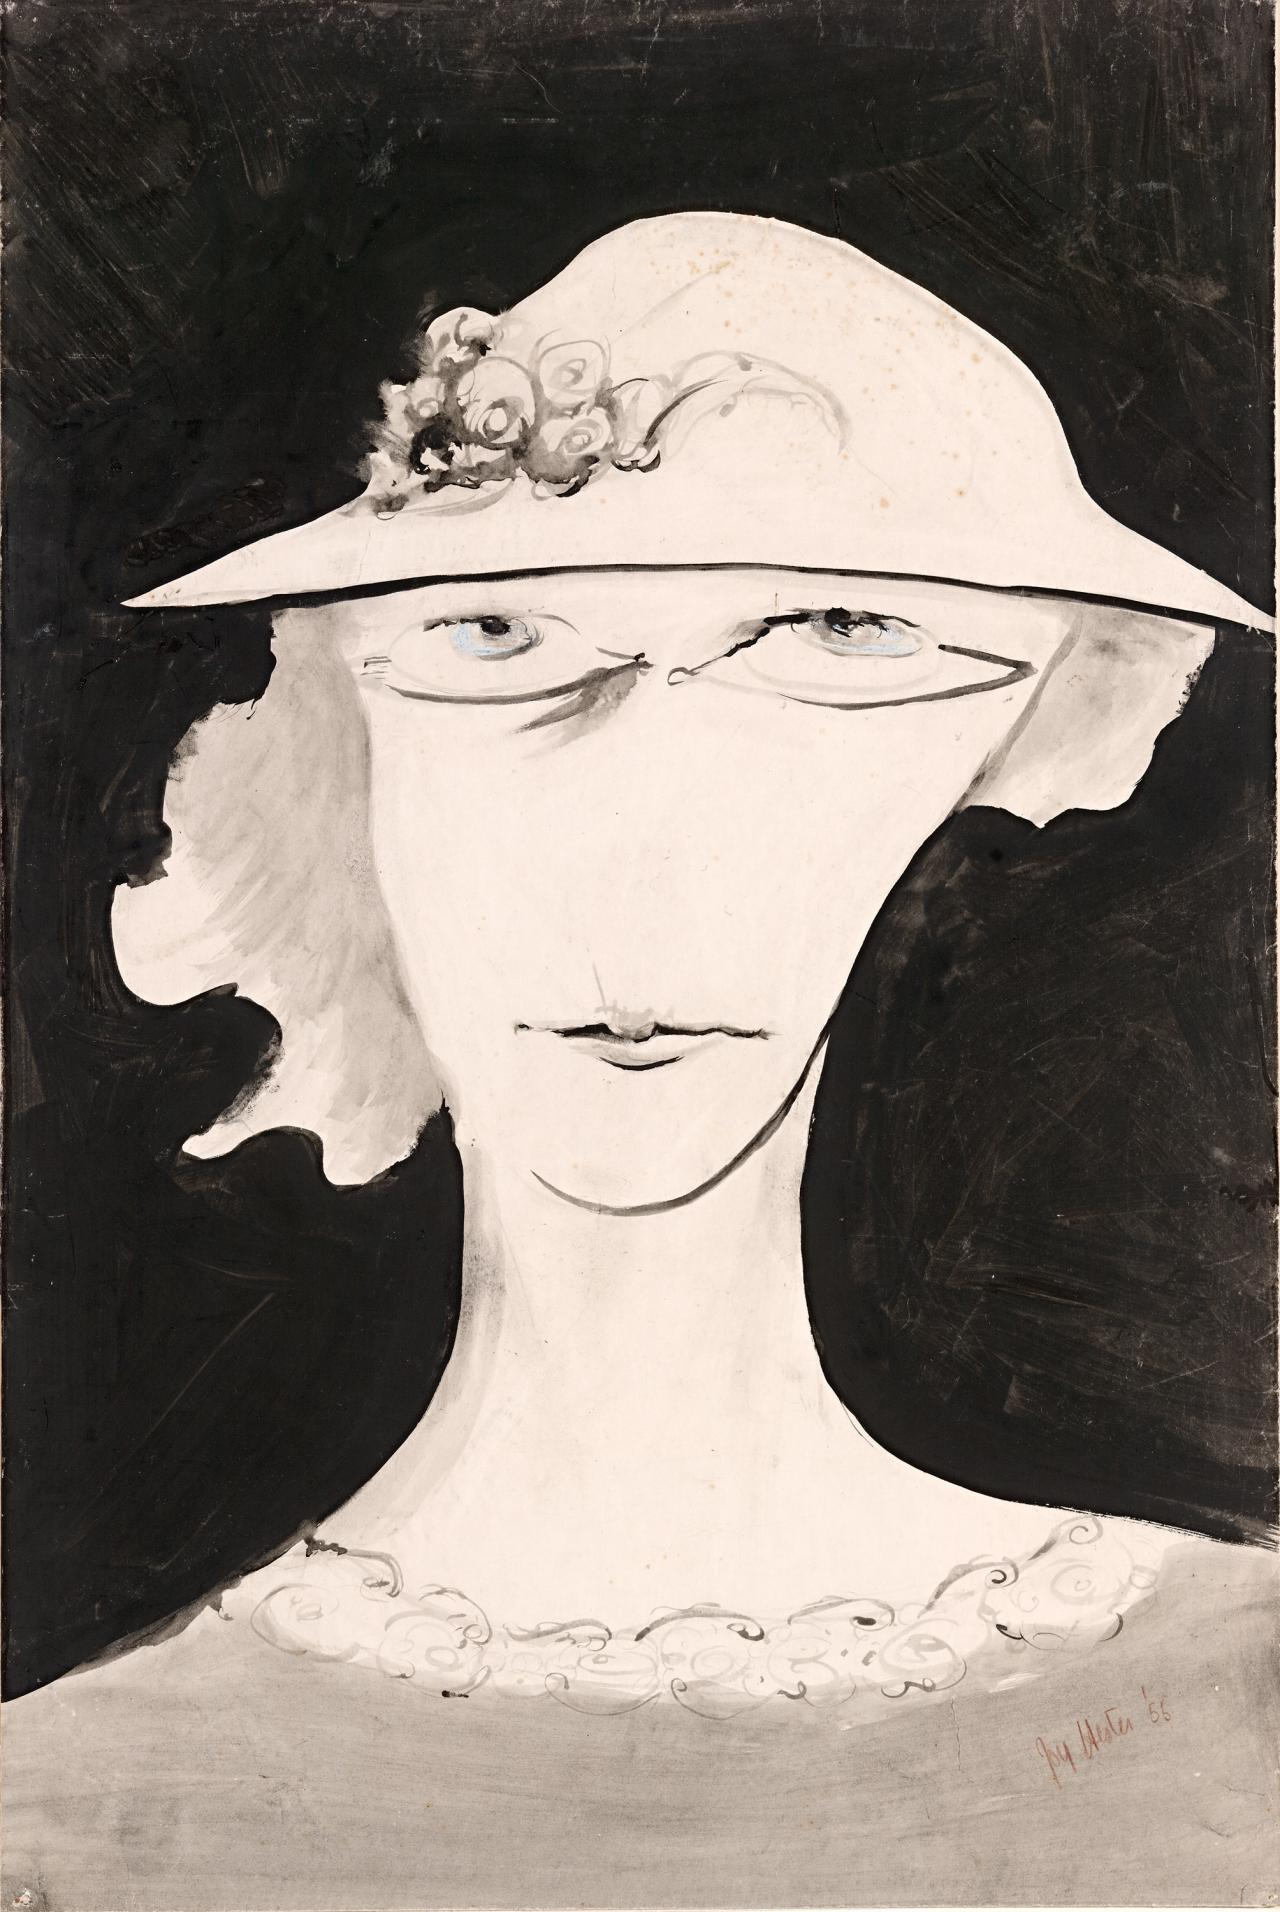 (Untitled) (Head of a woman with hat)